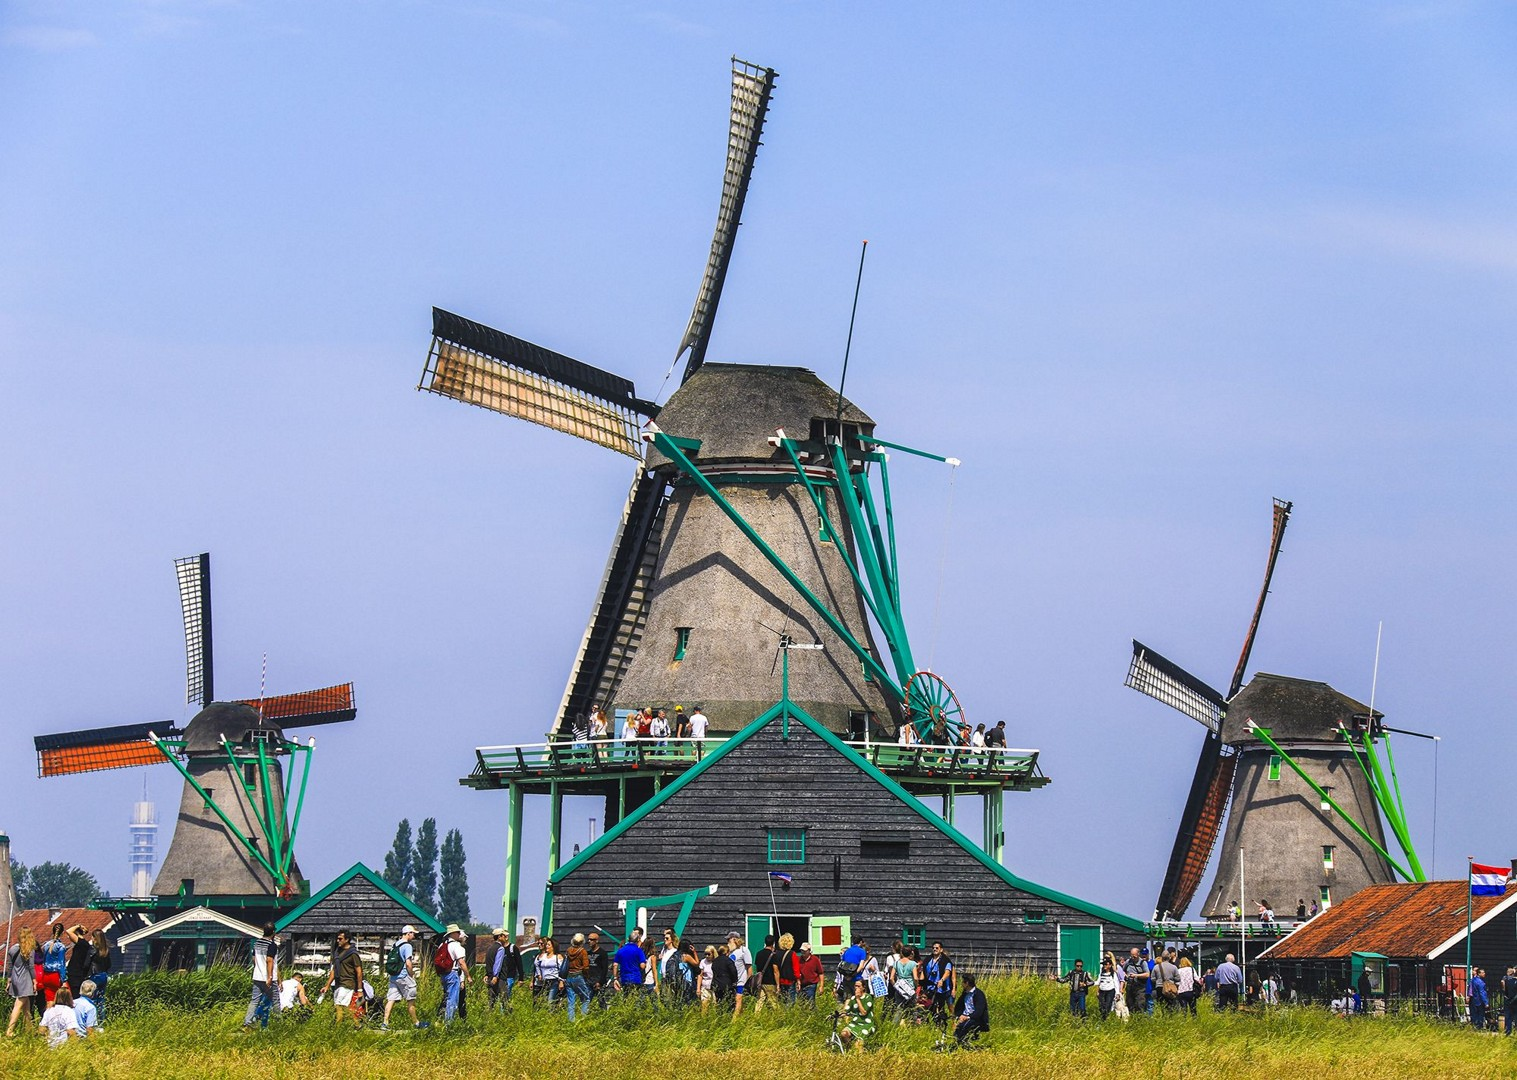 zaanse-schans-zaandam-holland-amsterdam-windmills-premium-bike-and-barge.jpg - Holland and Belgium - Bruges to Amsterdam - Premium Bike and Barge Holiday - Leisure Cycling